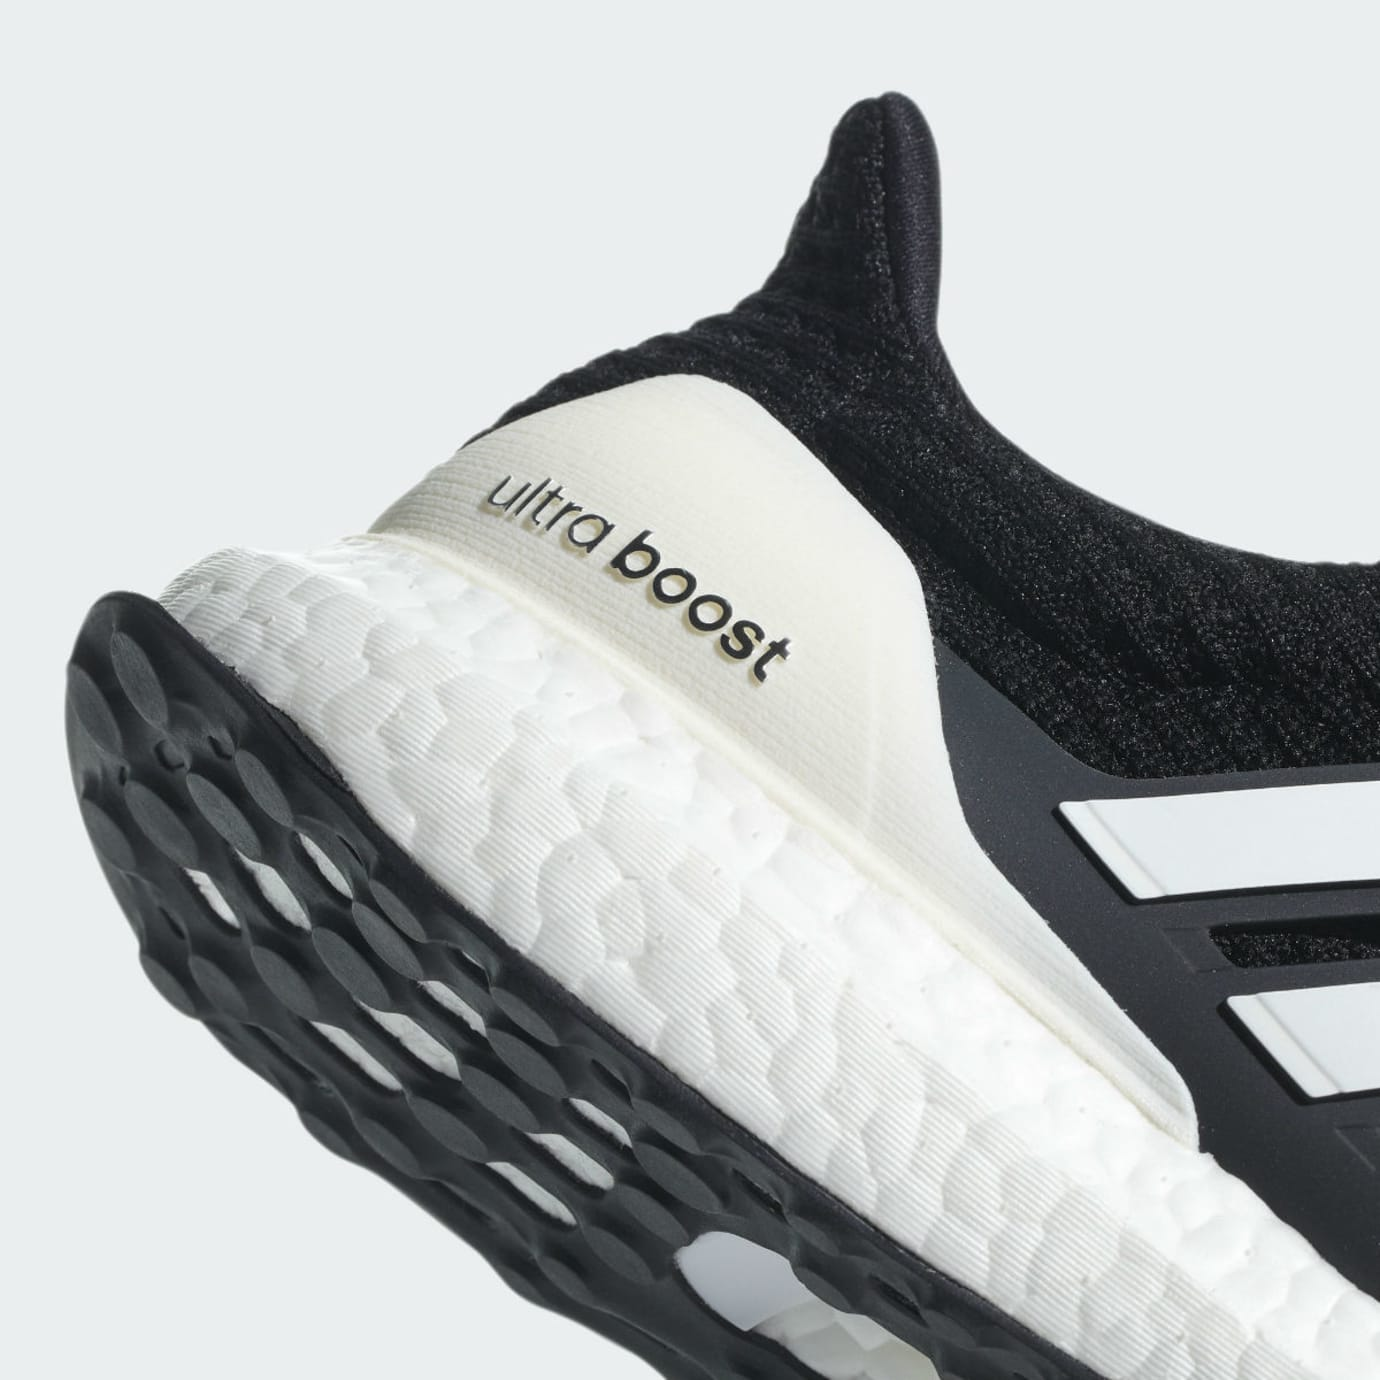 new concept 8d3b8 ef336 Adidas Ultra Boost 4.0 Show Your Stripes Core Black Cloud ...